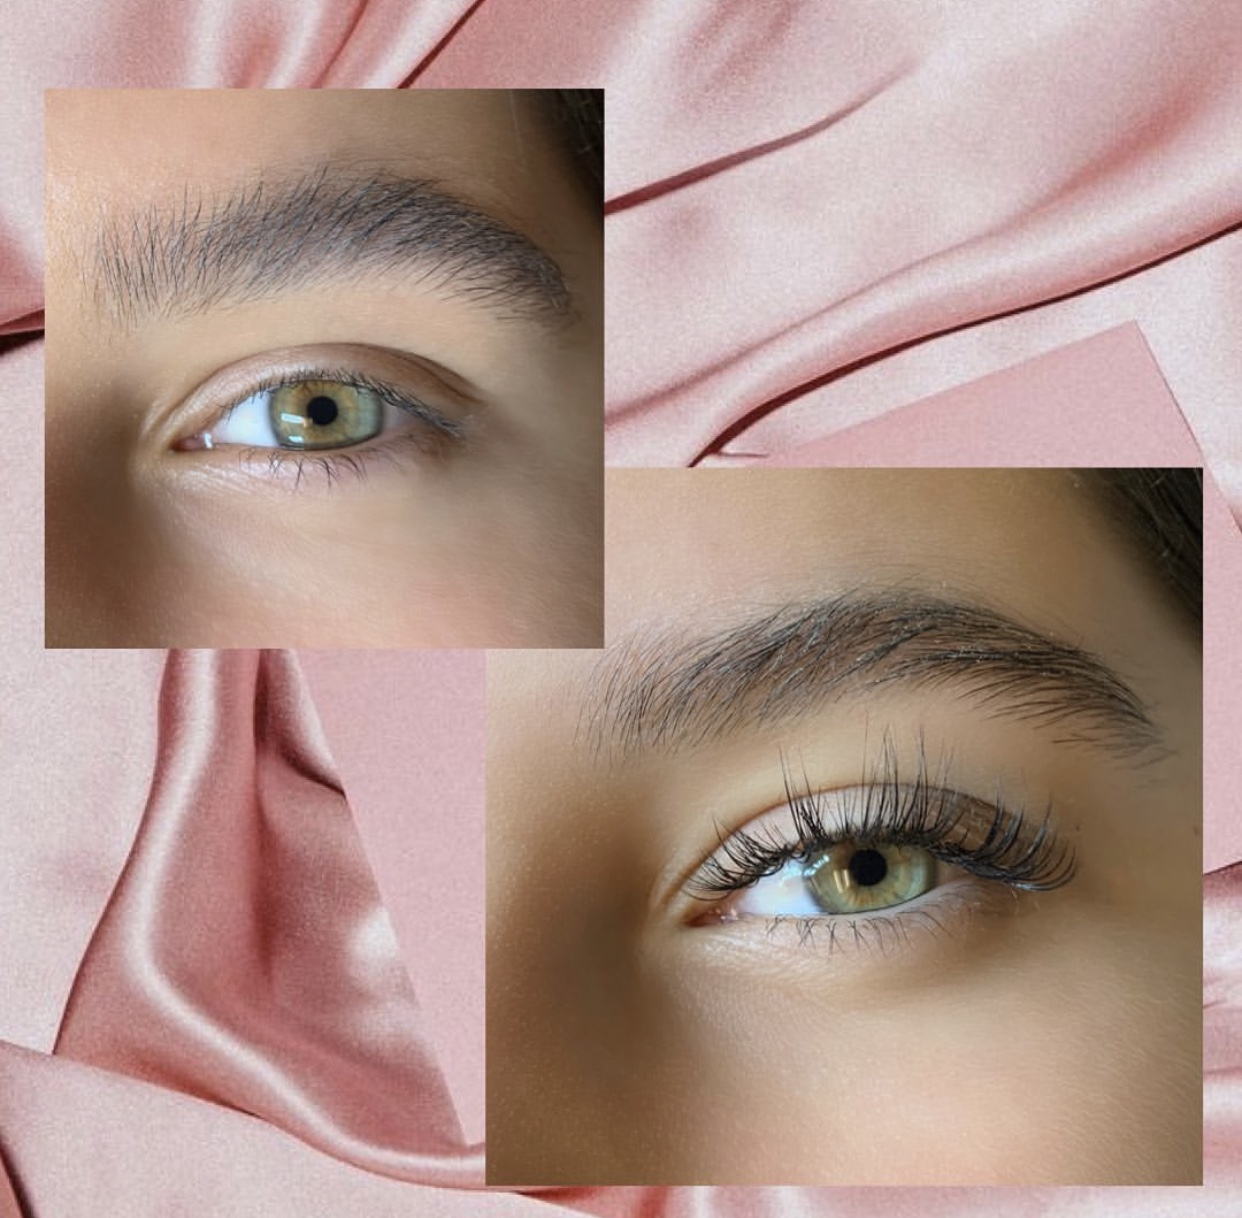 before and after eyelash styling images